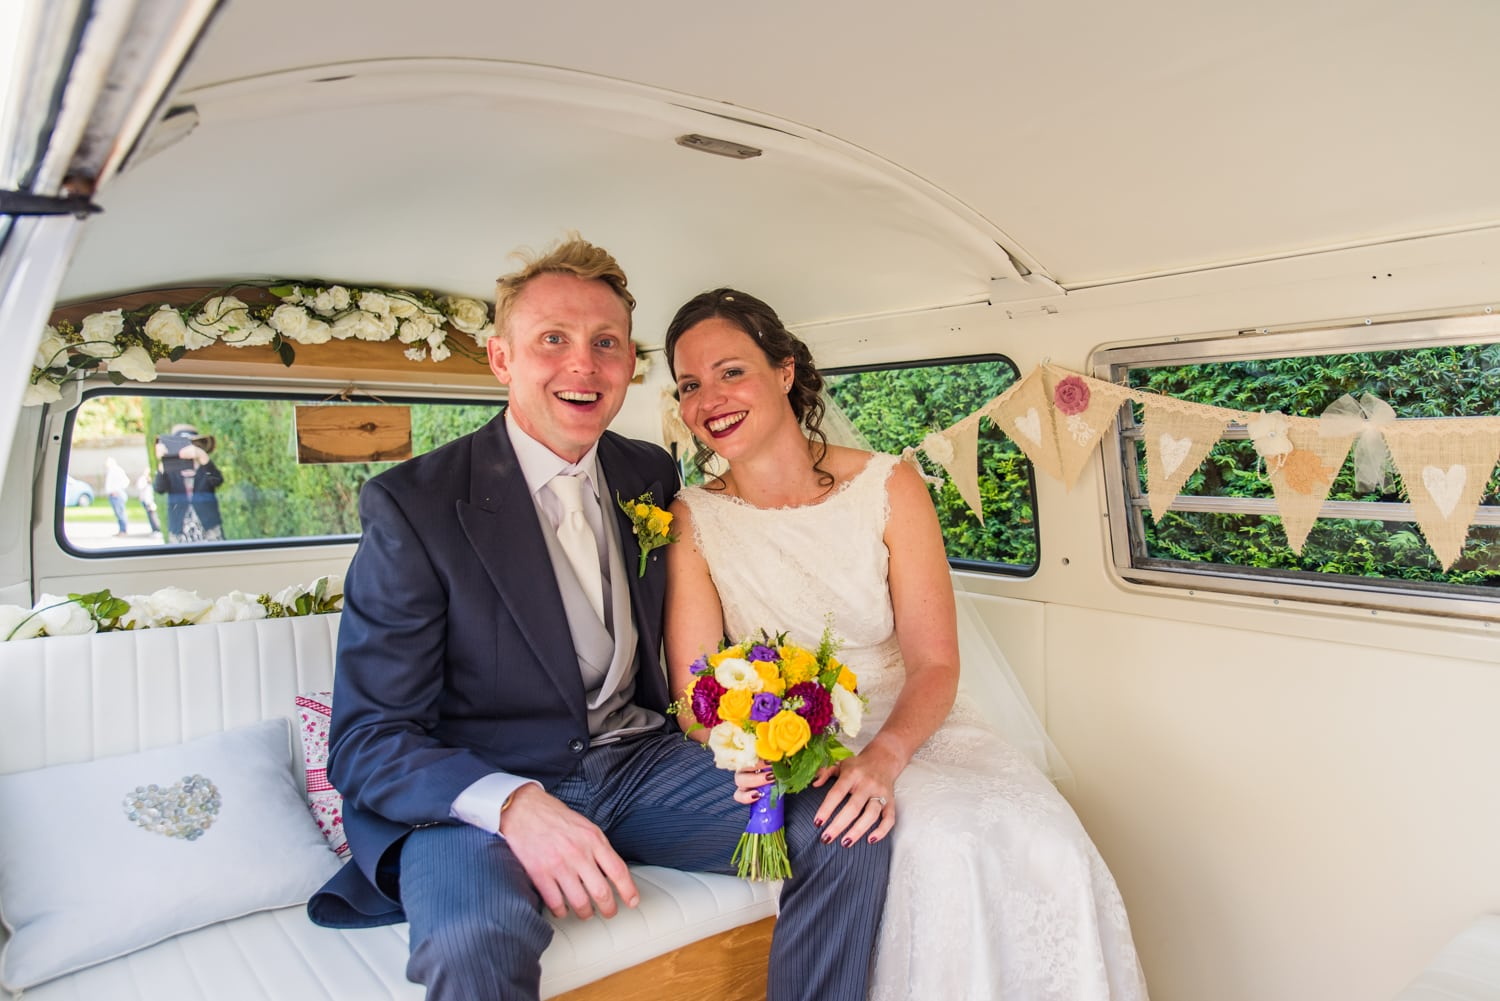 064-bride-and-groom-in-campervan_1.jpg